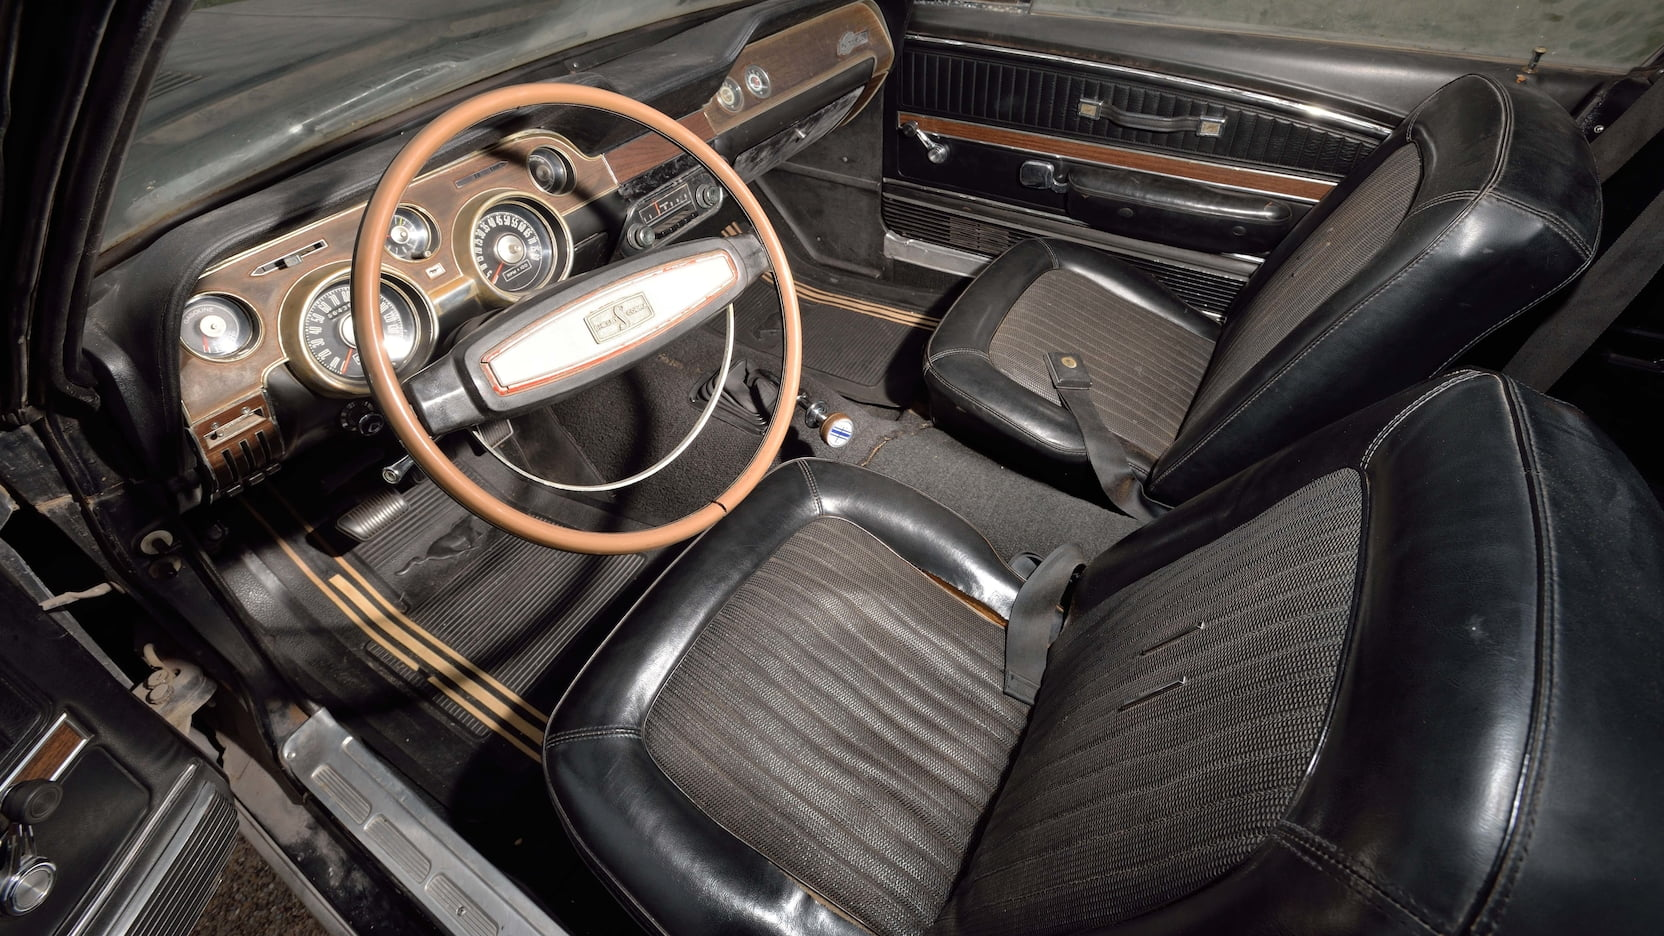 1968 Shelby GT500 Fastback interior